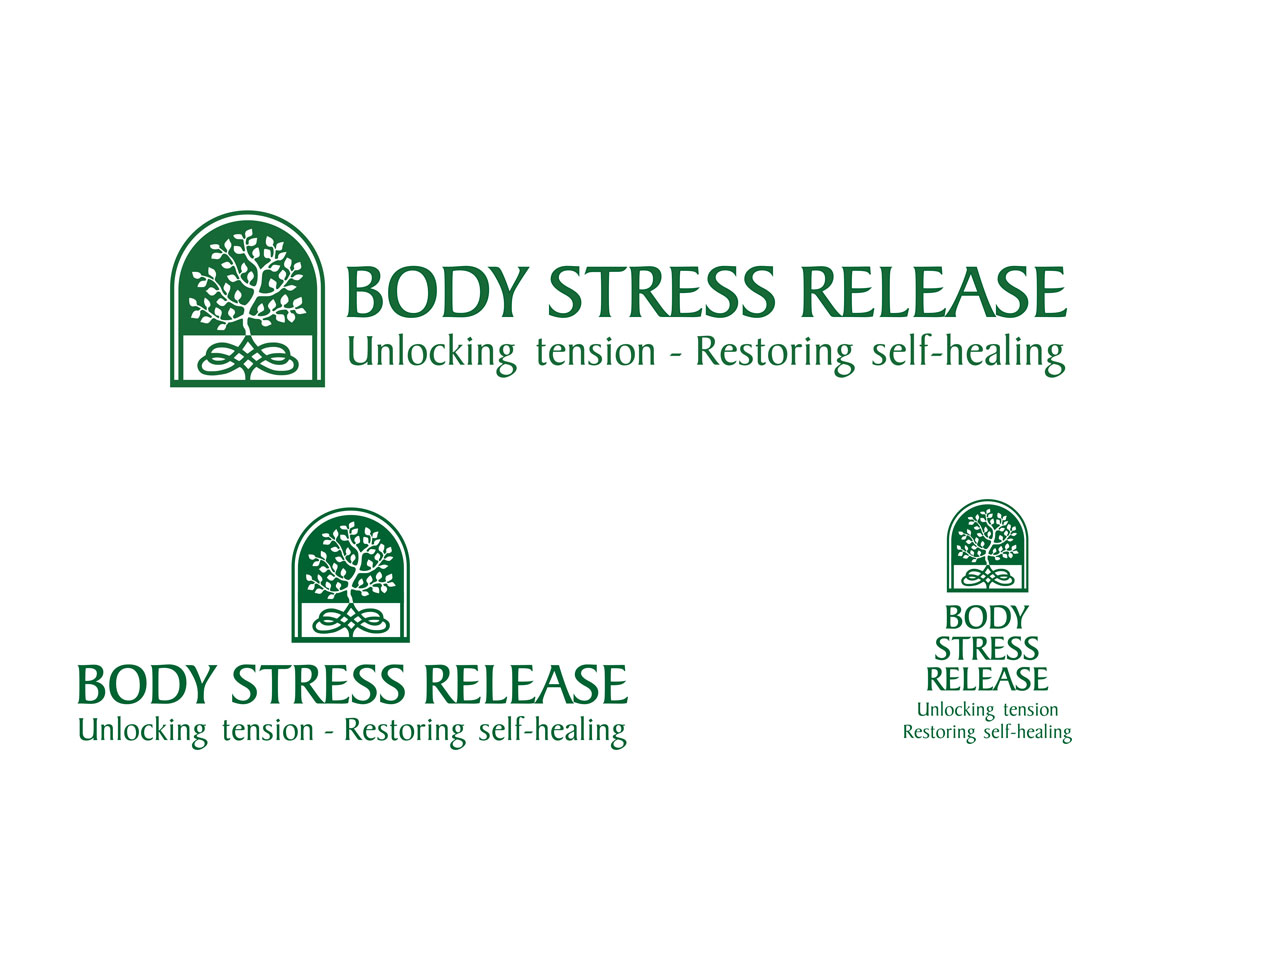 body stress rrelease logo design